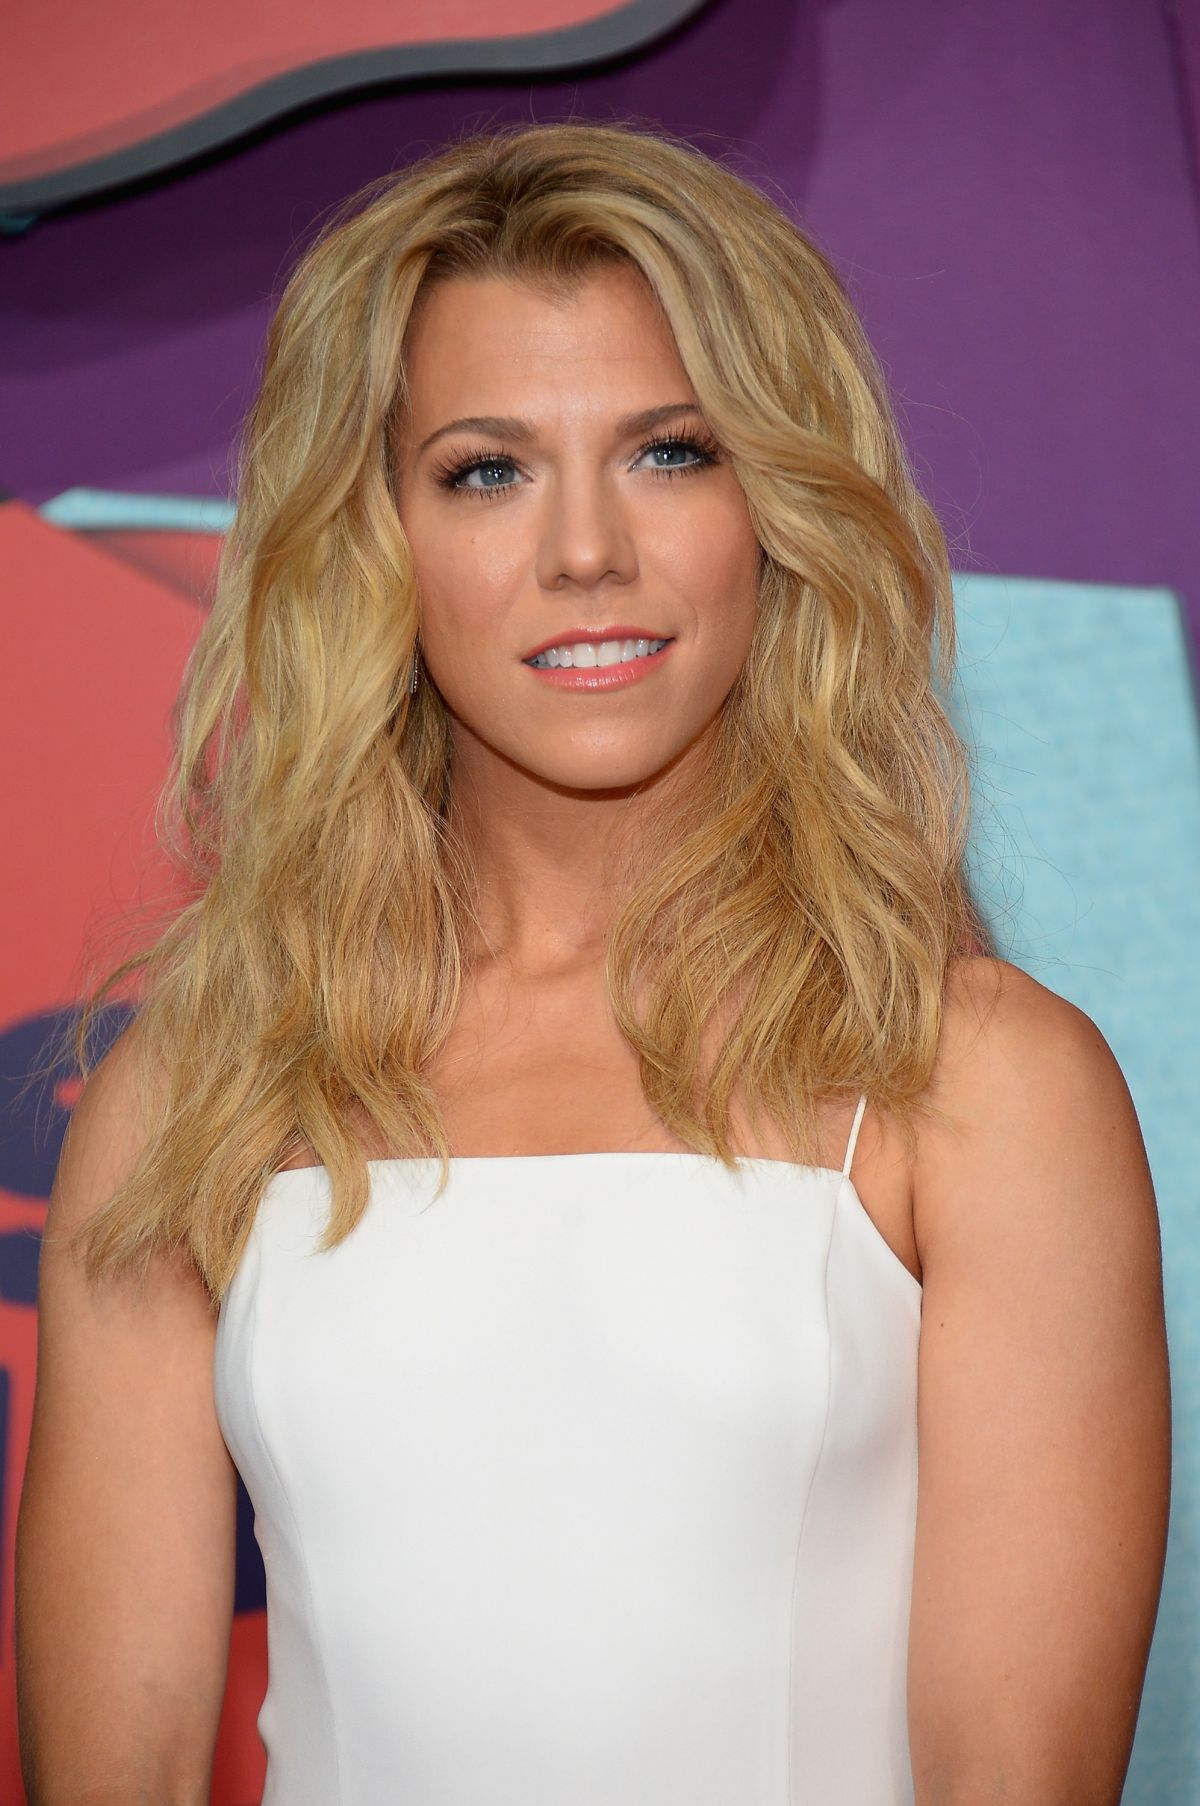 KIMBERLY PERRY at 2014 CMT Music Awards in Nashville